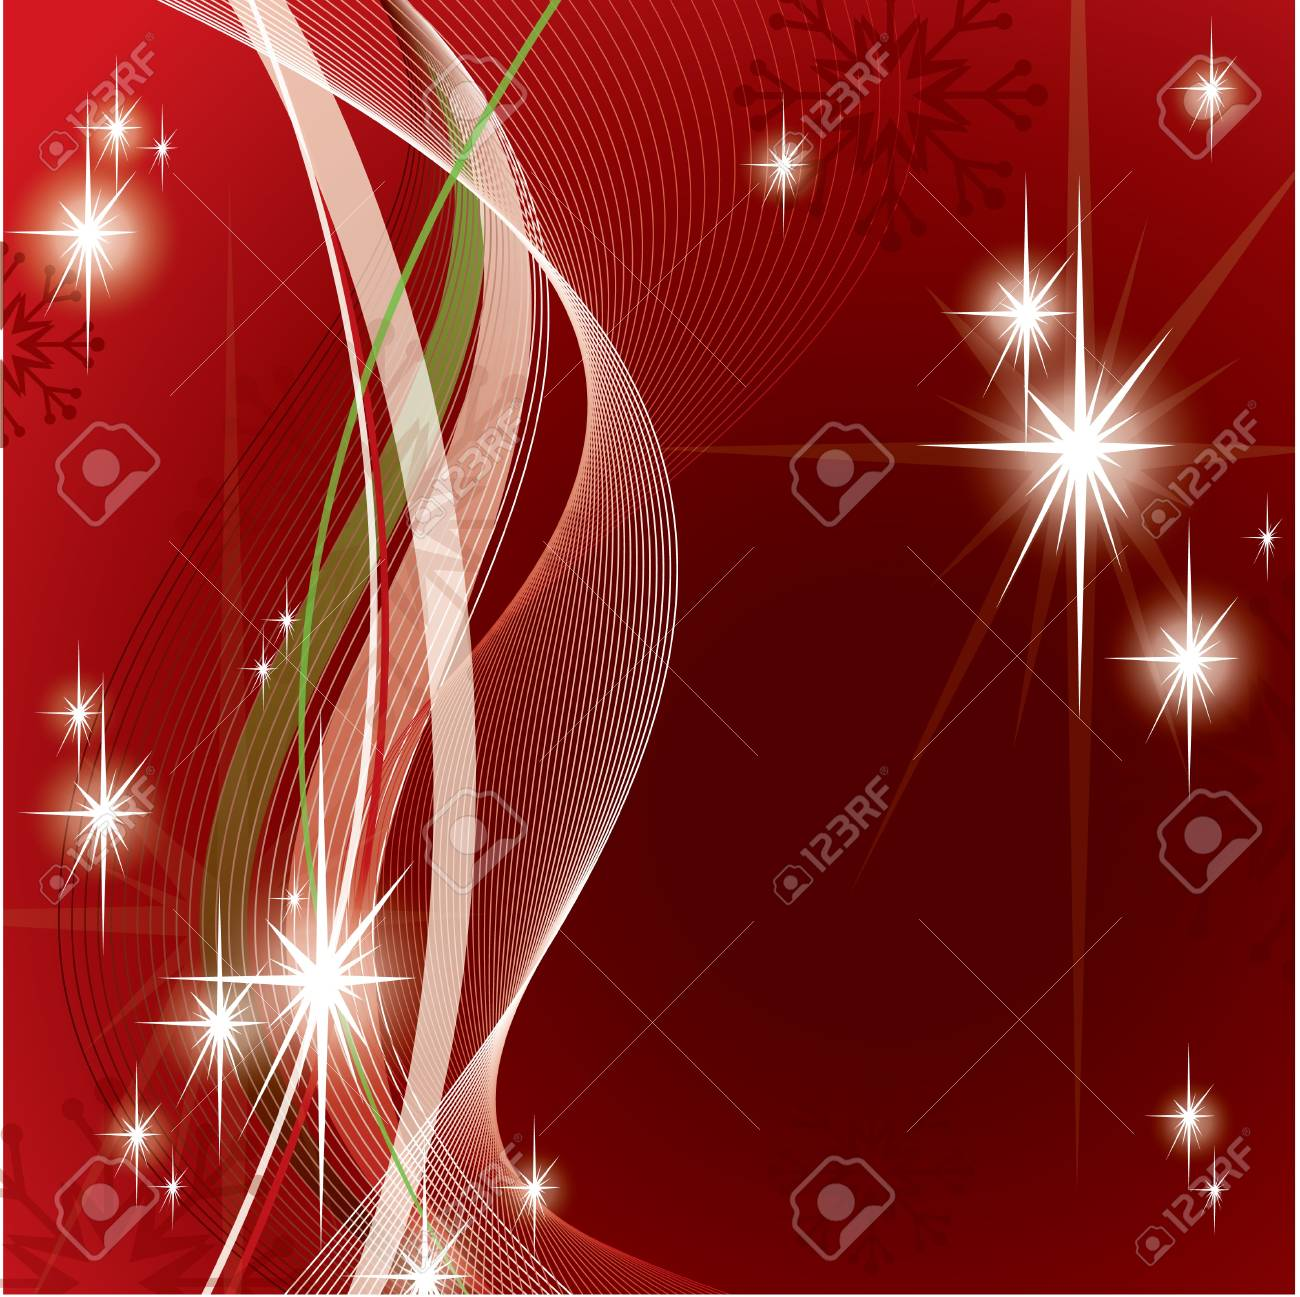 Christmas Background Stock Vector - 21718532